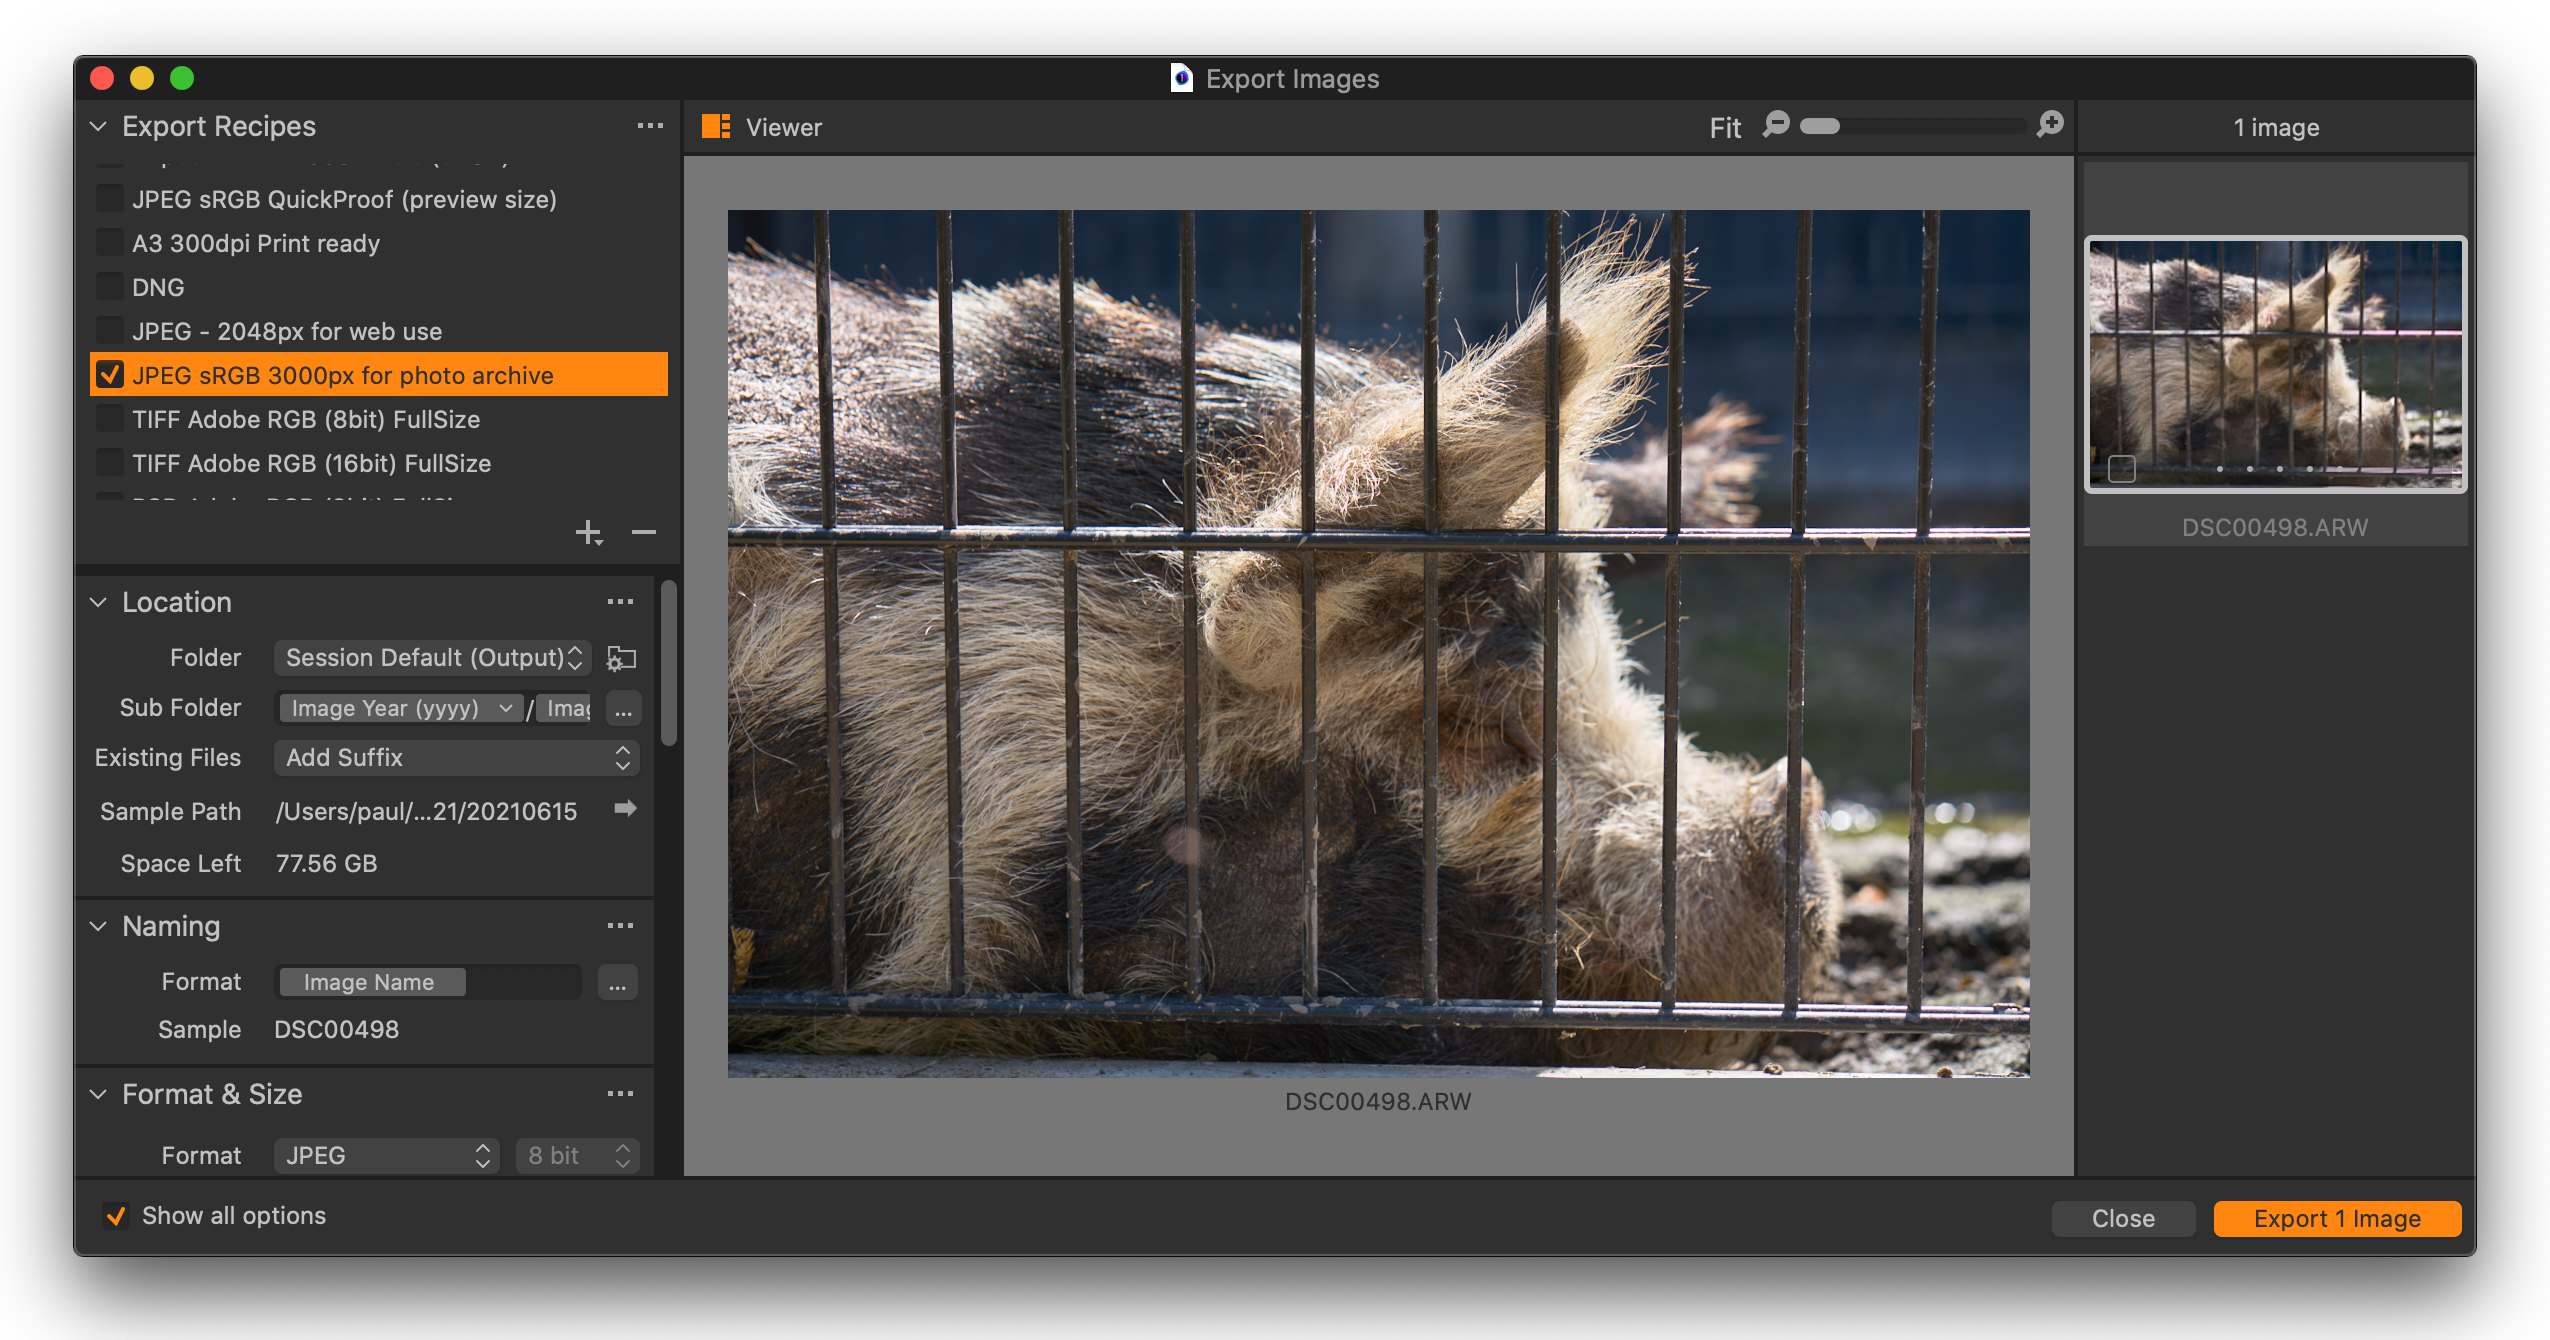 export images dialog with large viewer